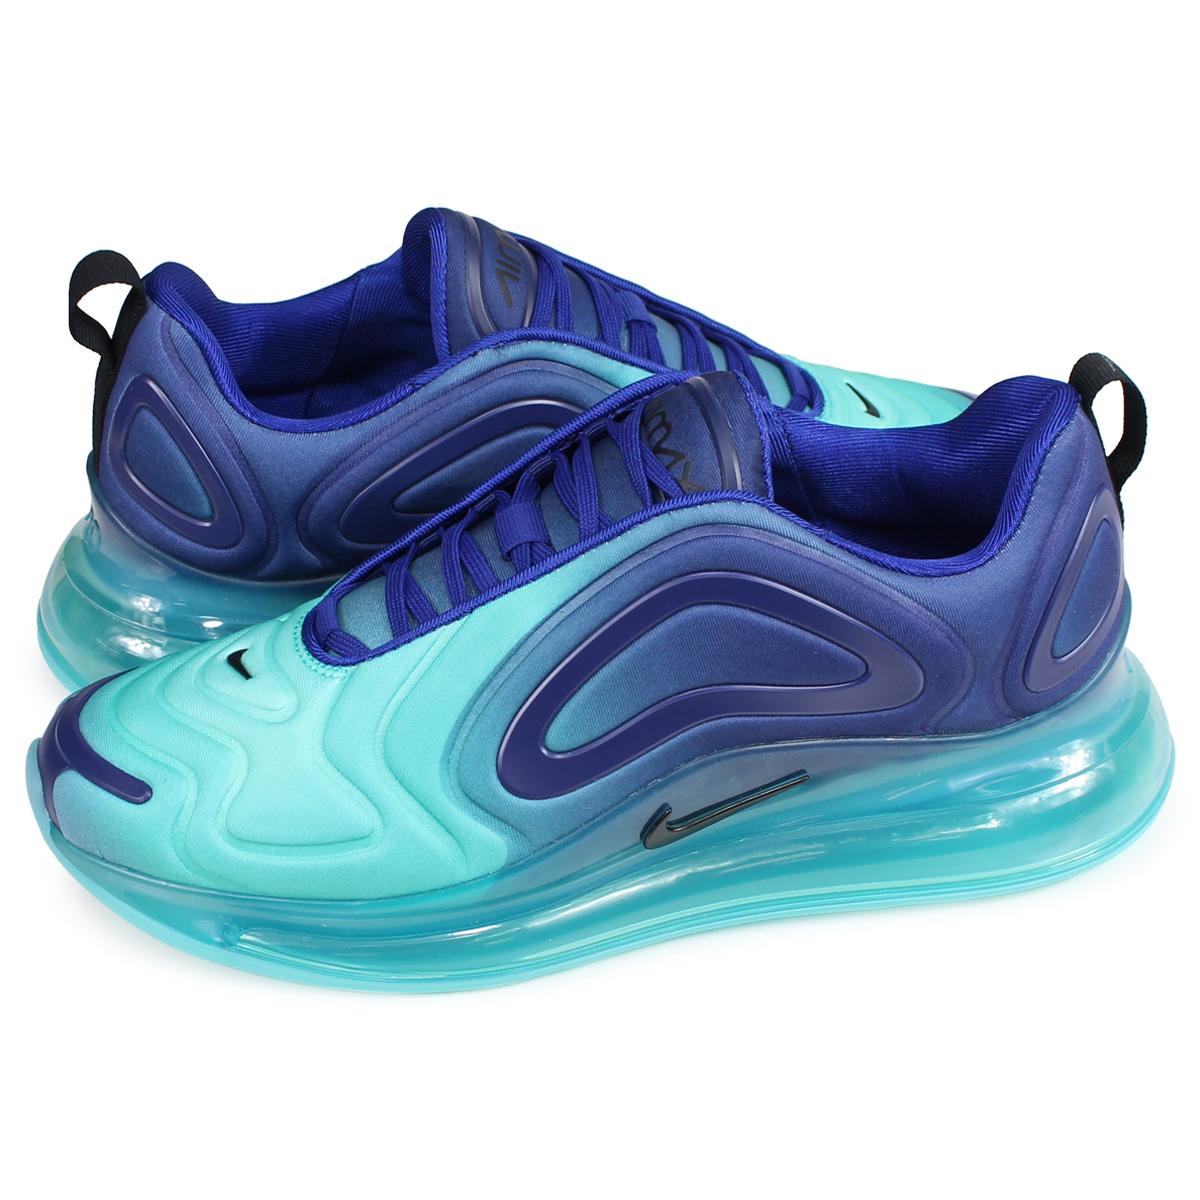 Nike NIKE Air Max 720 sneakers men AIR MAX 720 blue AO2924 400 [193]